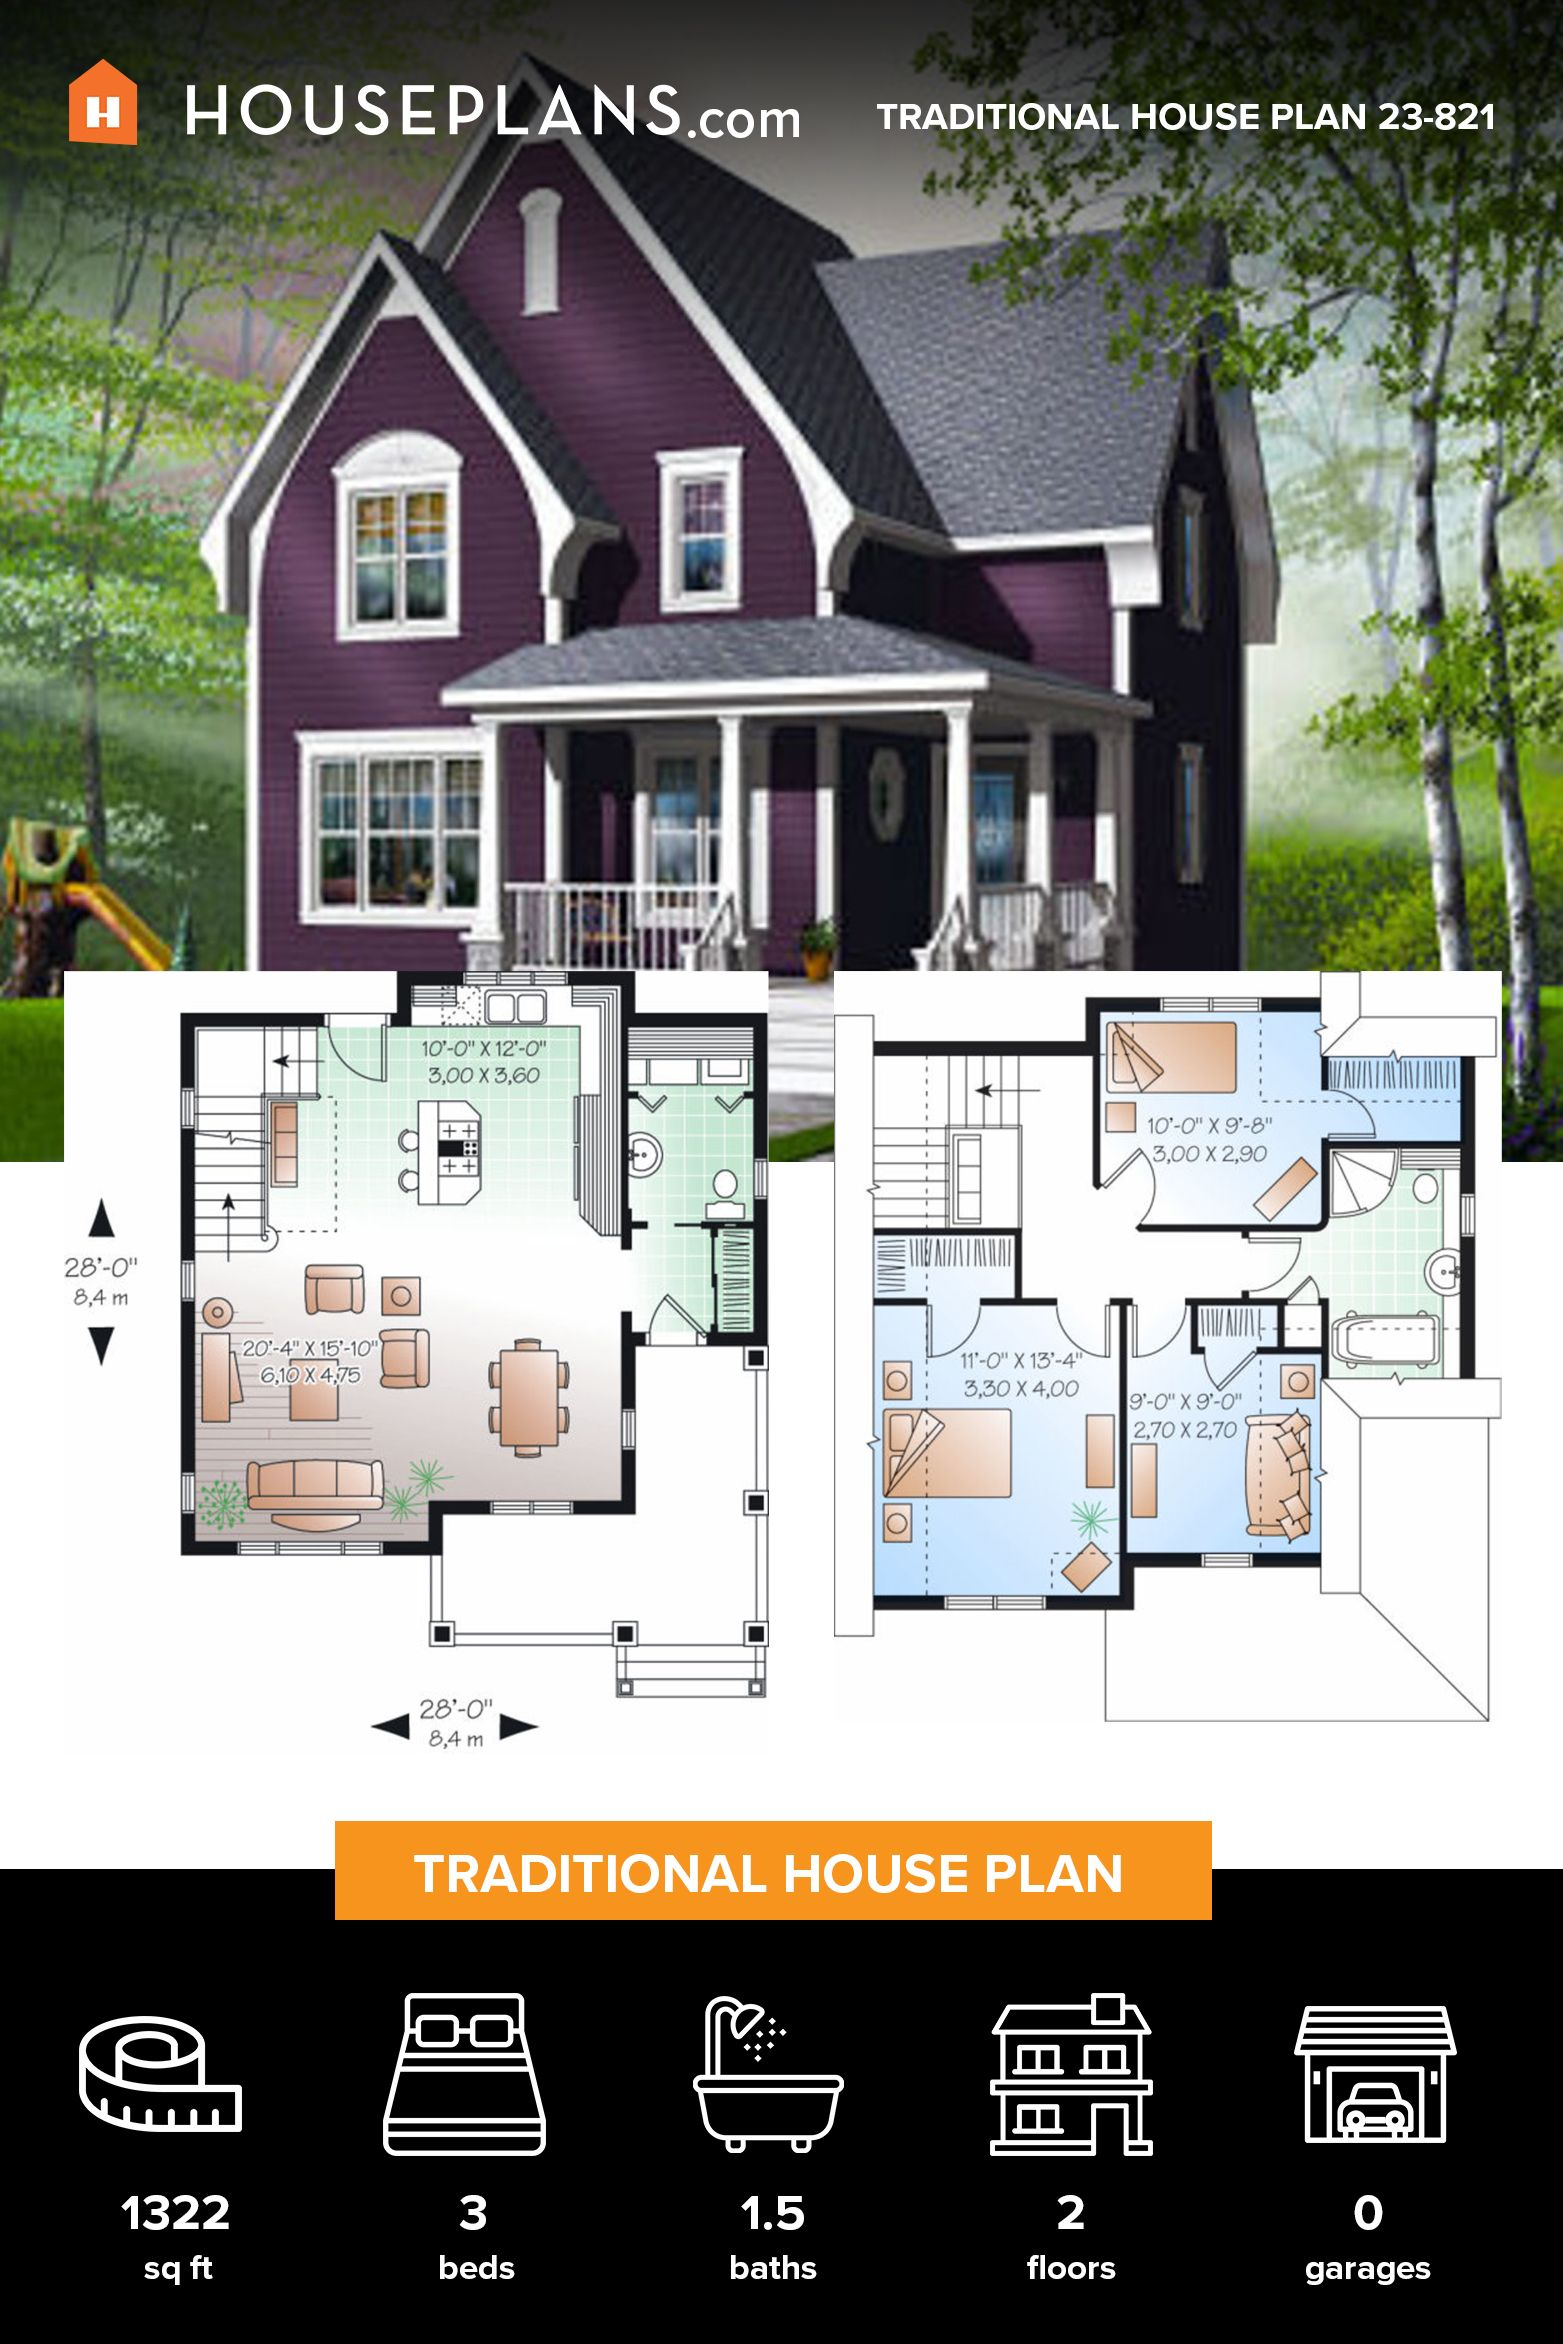 Traditional Style House Plan 3 Beds 1 5 Baths 1322 Sq Ft Plan 23 821 House Plans Small House Design Plans Small House Design Floor Plan